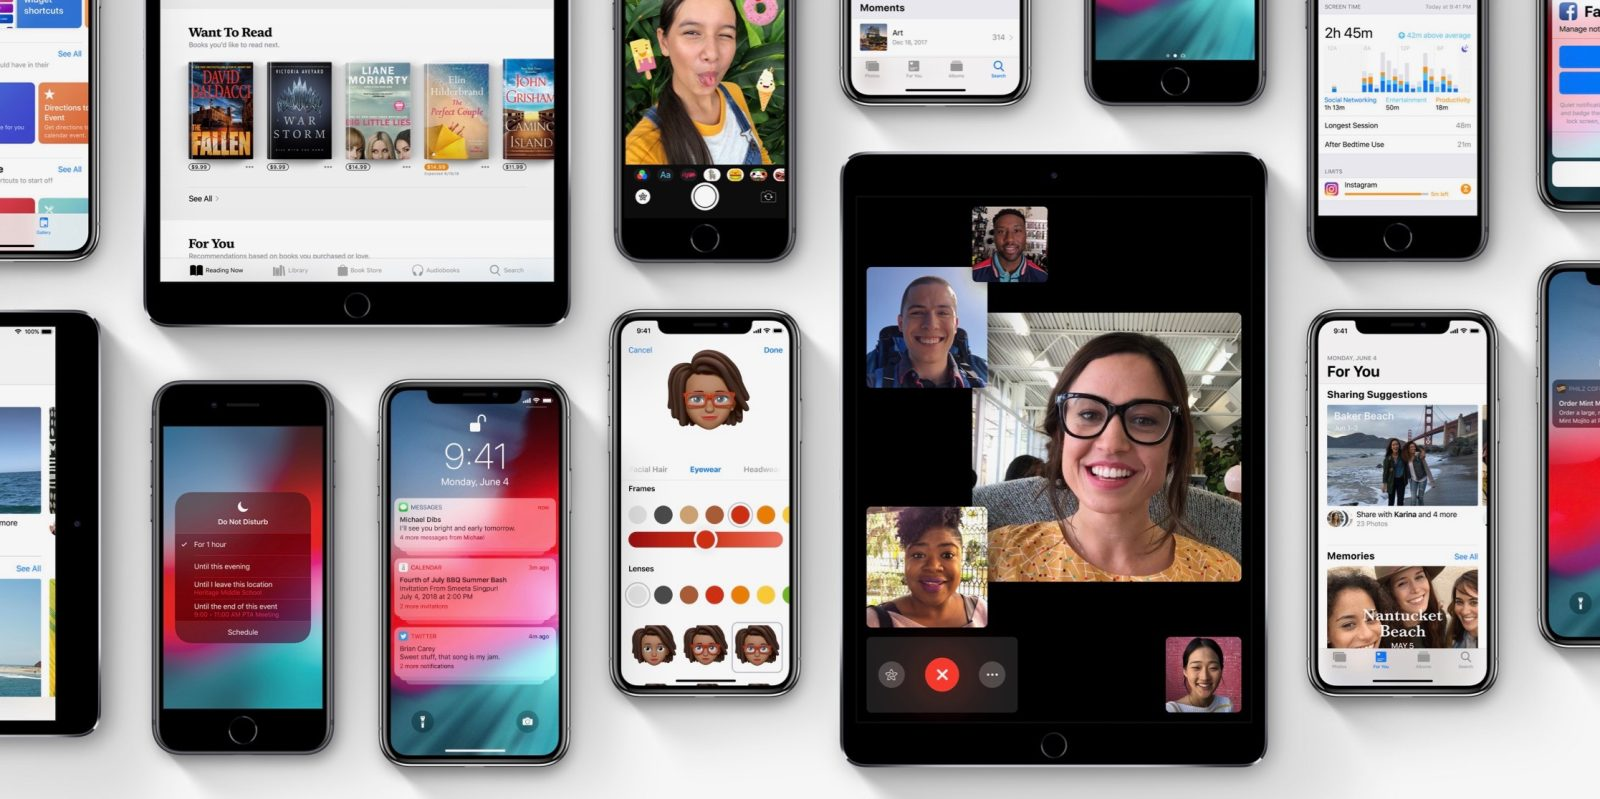 iOS 12 is Now Available with Performance Boosts, Screen Time, Smarter Notifications, Much More